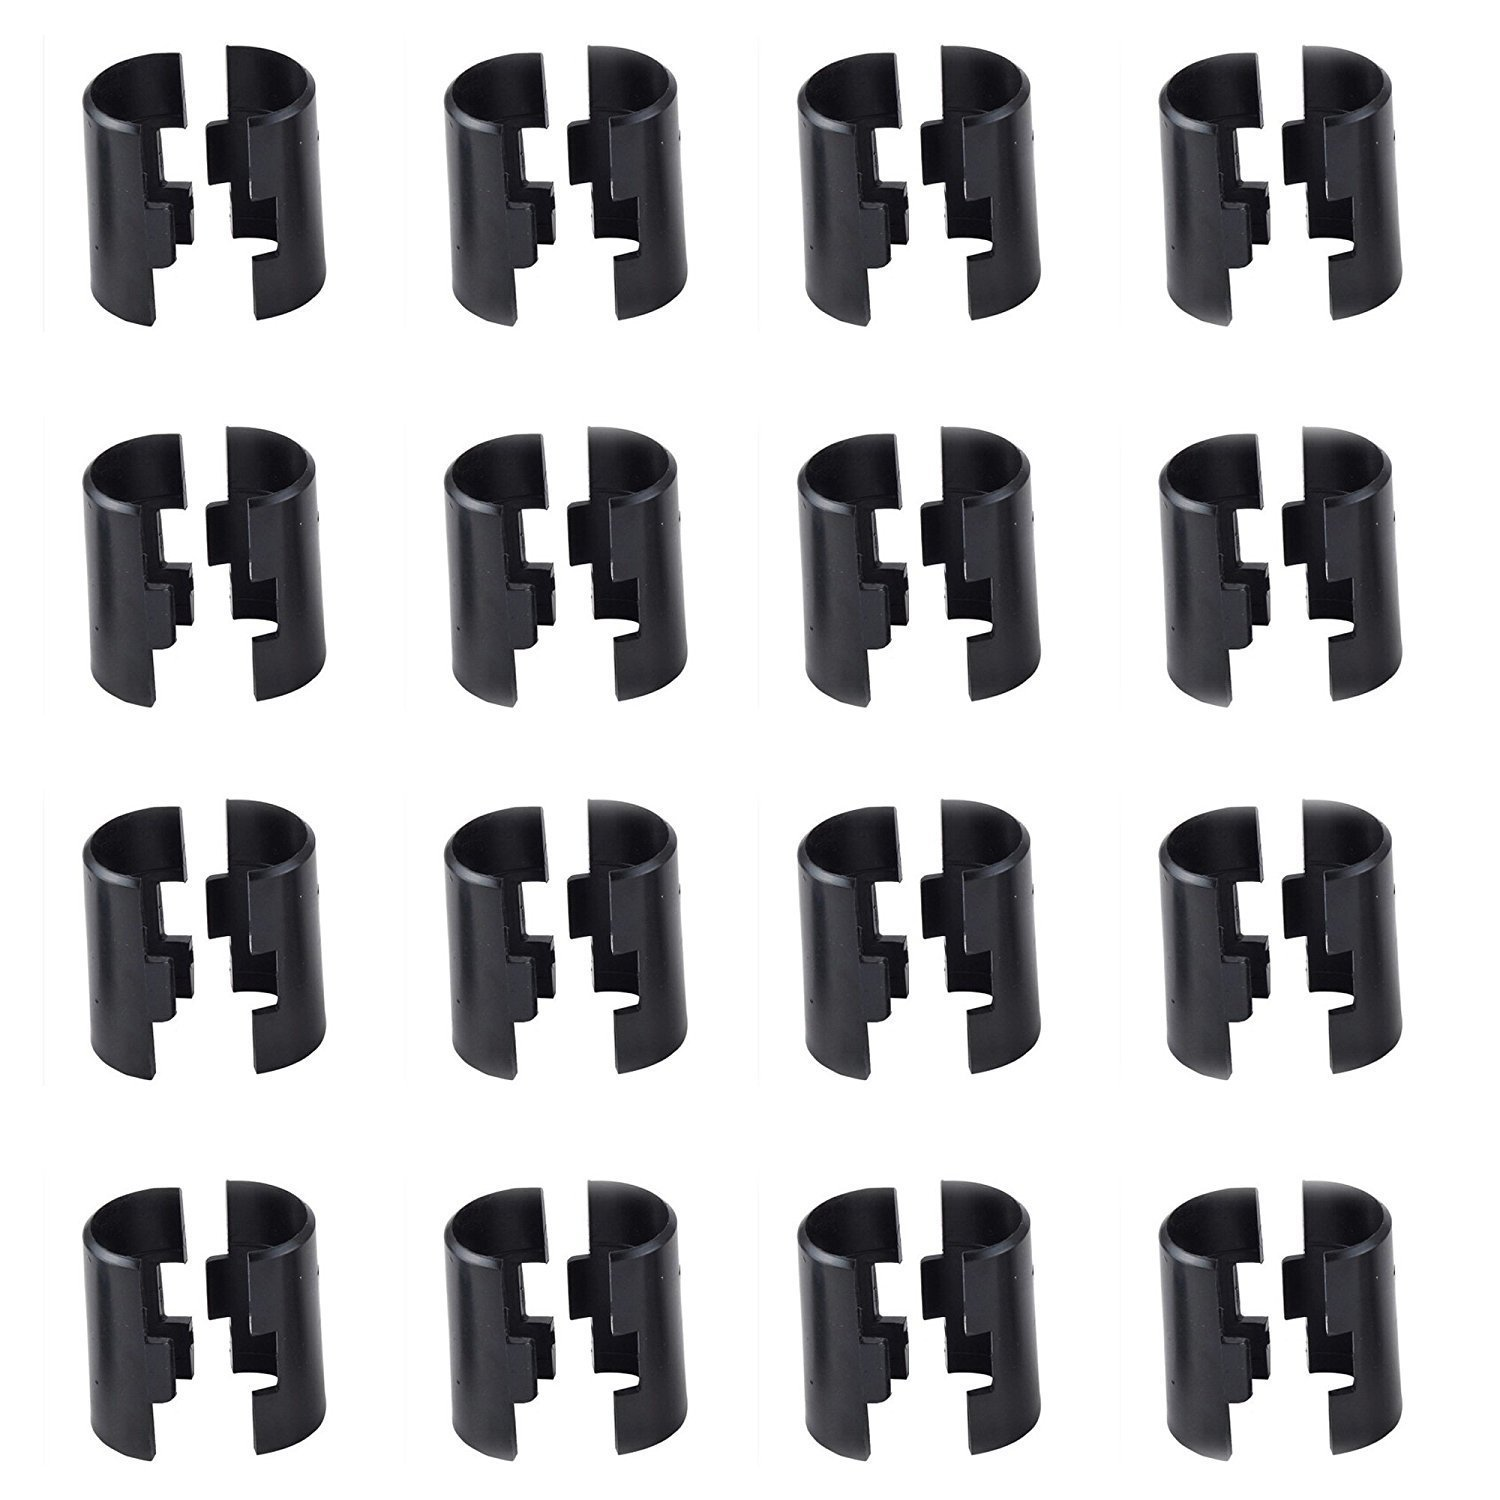 TeeGoo Wire Shelving Shelf Lock Clips for 1'' Post, Shelving Sleeves, Plastic, Black (16 Pairs)